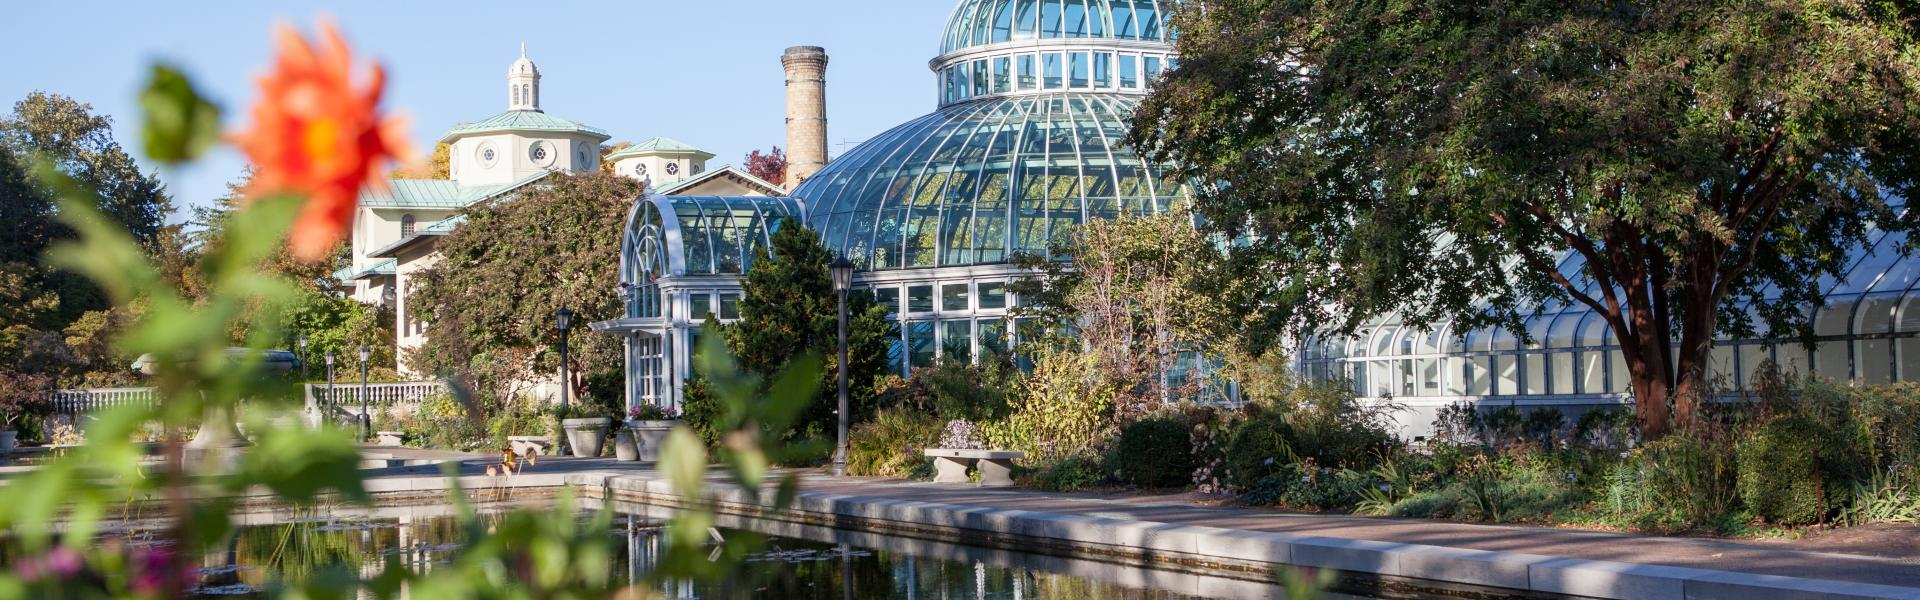 Brooklyn Botanic Garden, Greenhouse, Pond